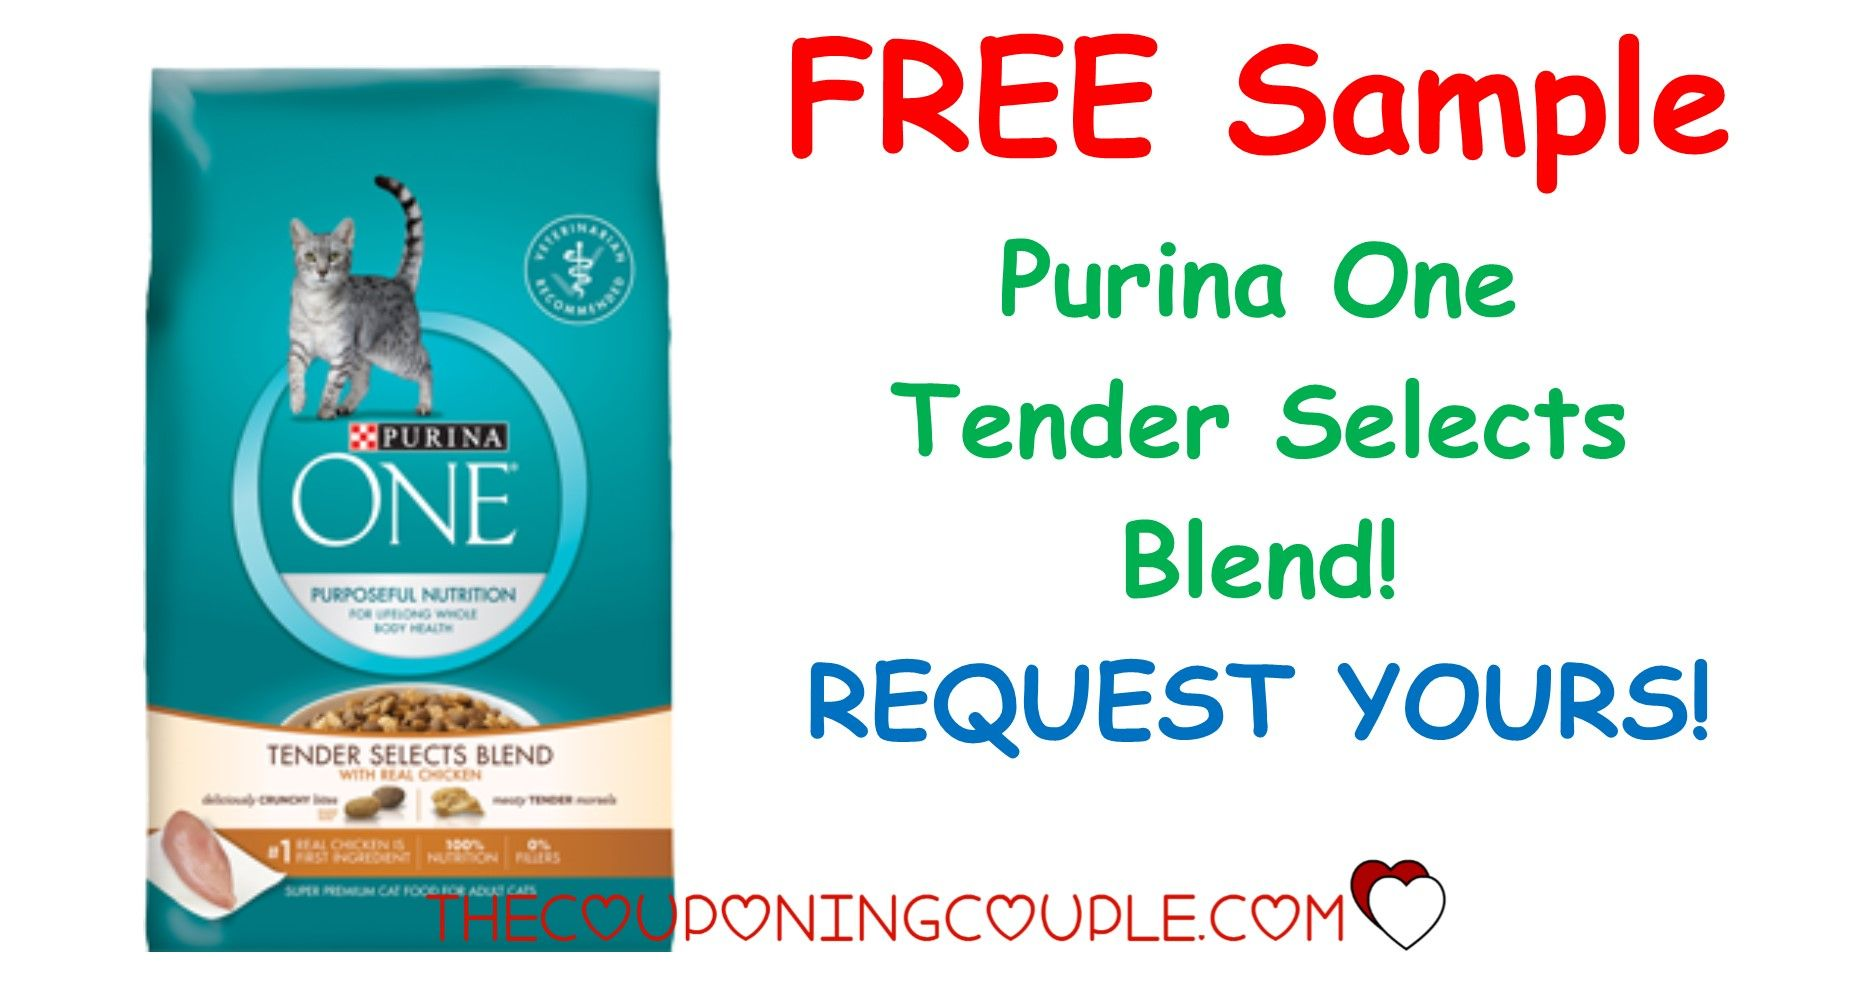 FREE SAMPLE! Get a free sample of Purina One Tender Selects Blends! Your kitty will love you! What a special treat! Request it now while supplies are available!  Click the link below to get all of the details ► http://www.thecouponingcouple.com/free-sample-purina-one-tender-selects-blend/ #Coupons #Couponing #CouponCommunity  Visit us at http://www.thecouponingcouple.com for more great posts!